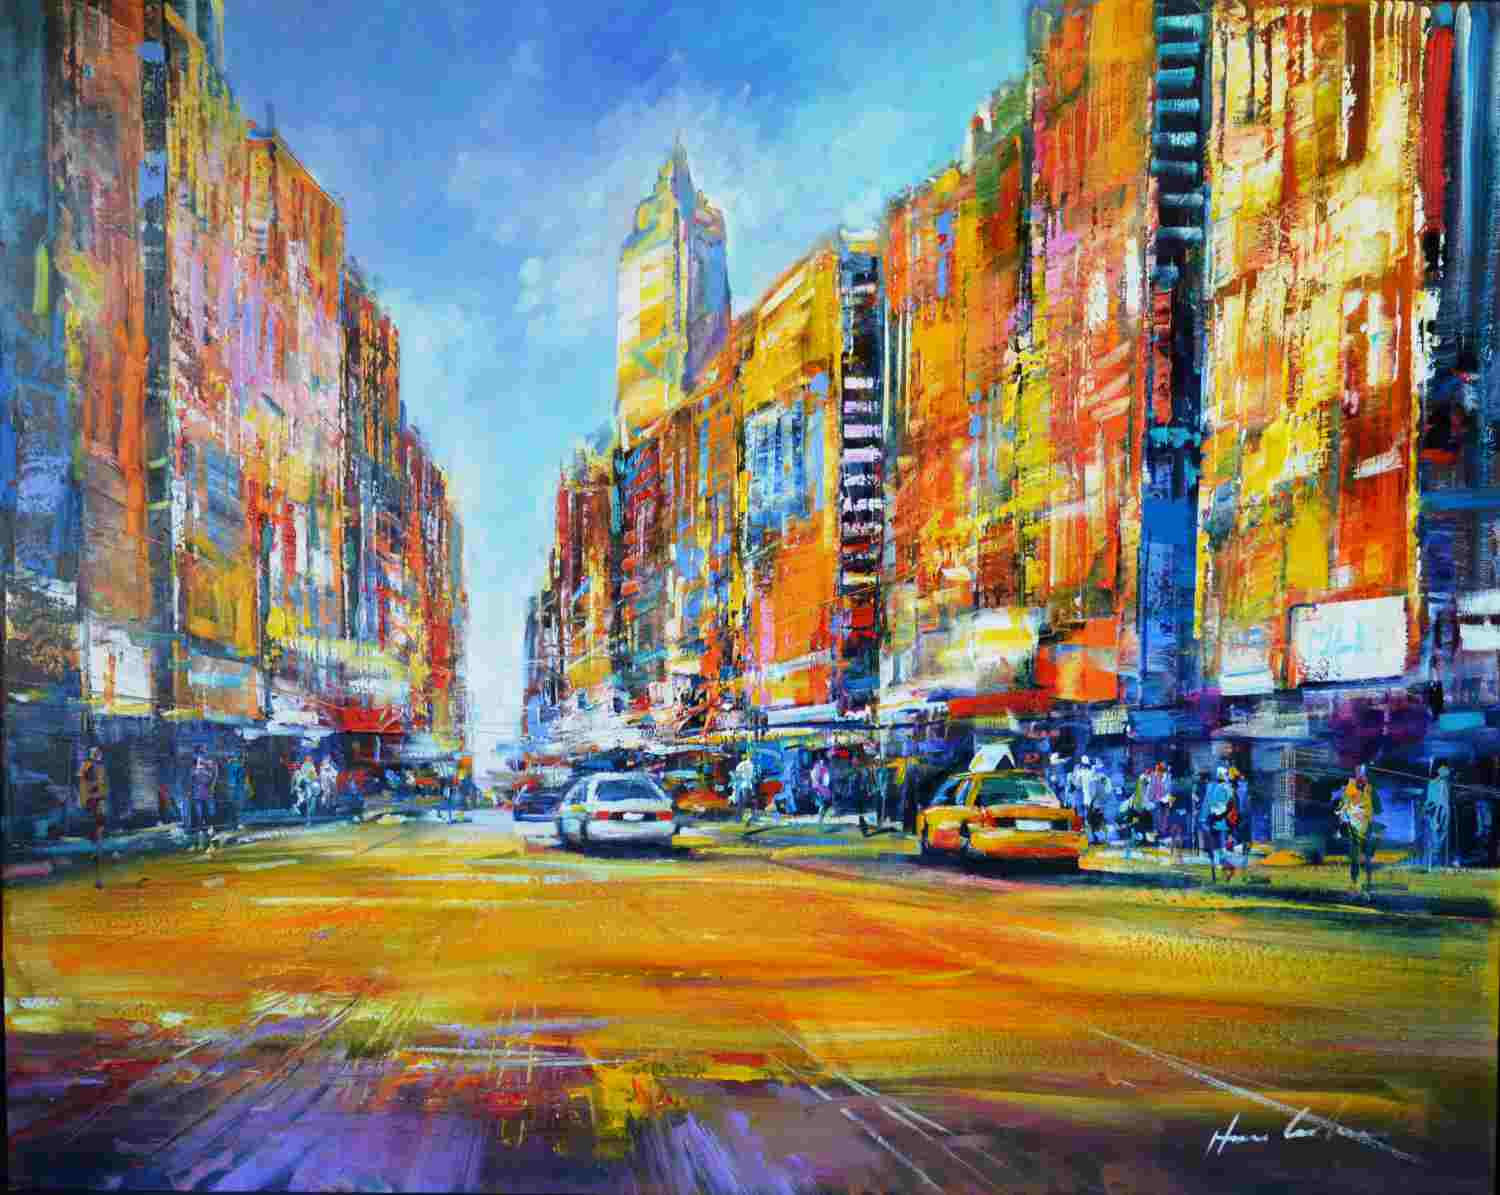 New York von Henze, Christian100 x 80cm